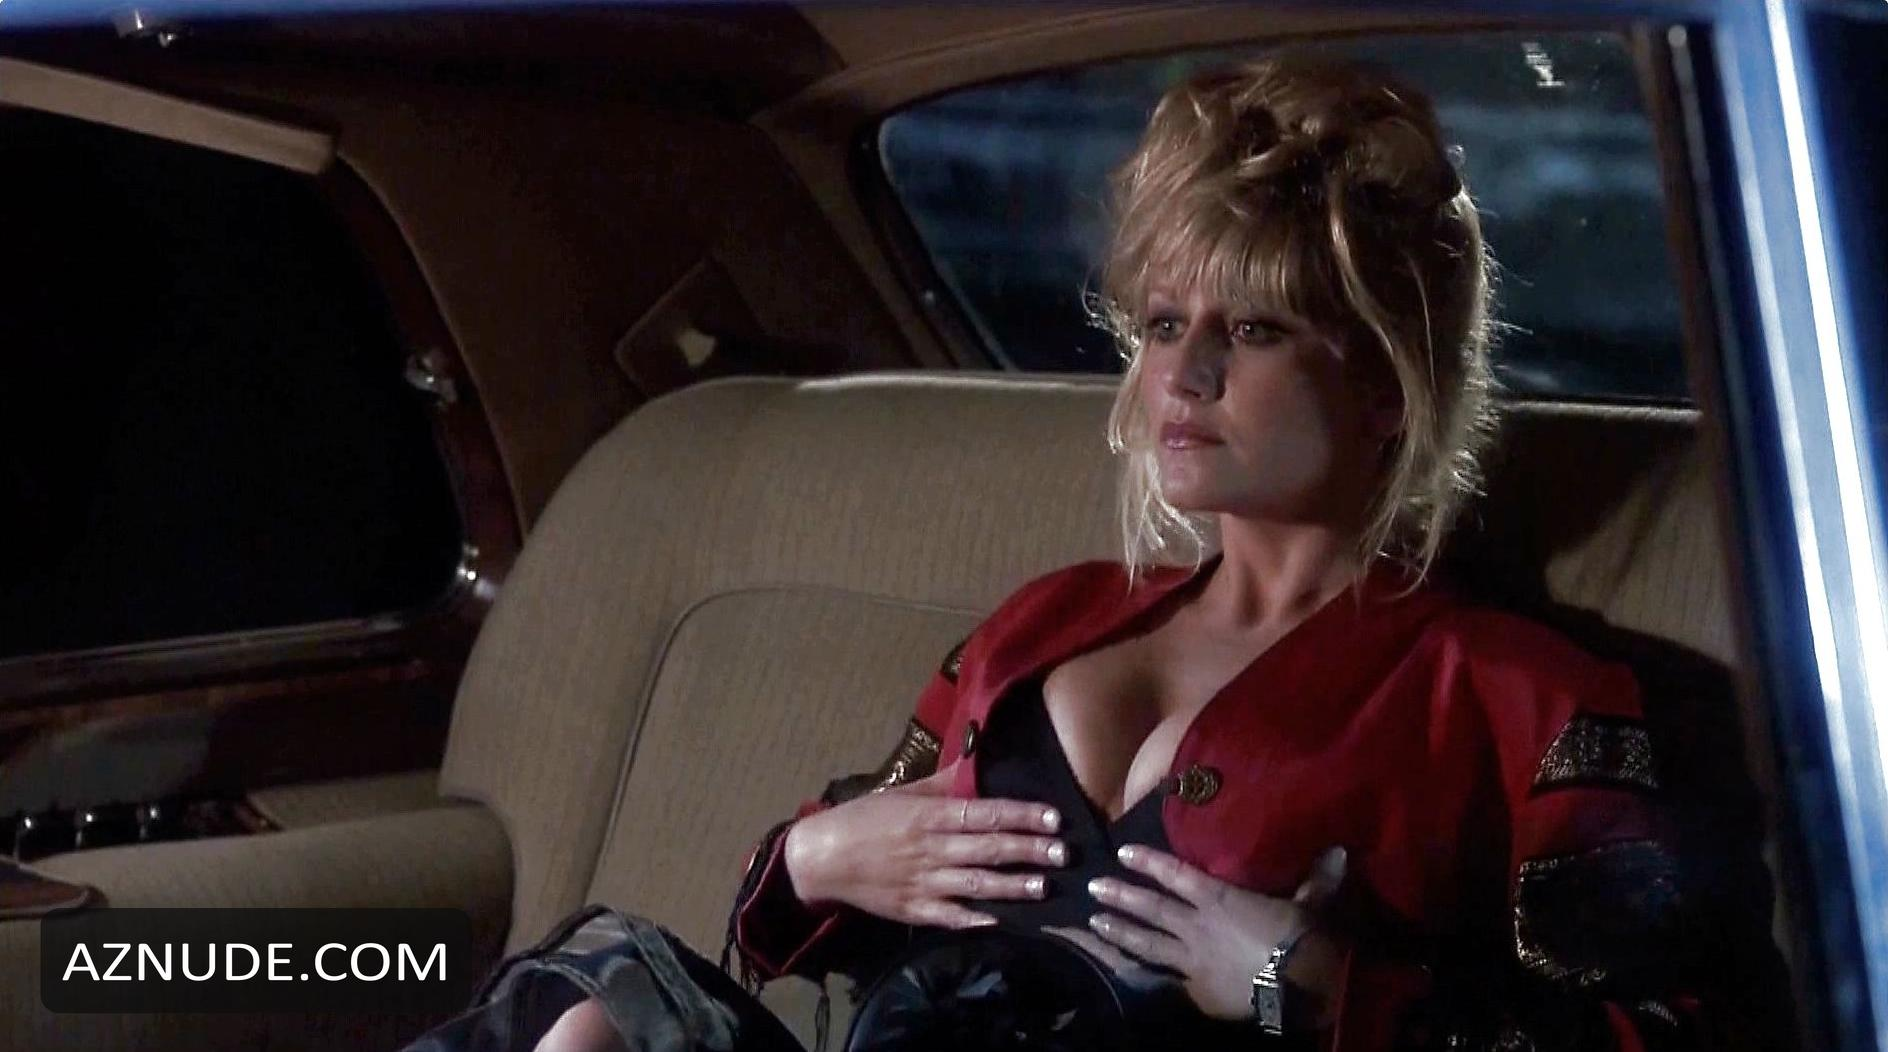 Naked camille coduri in nuns on the run ancensored